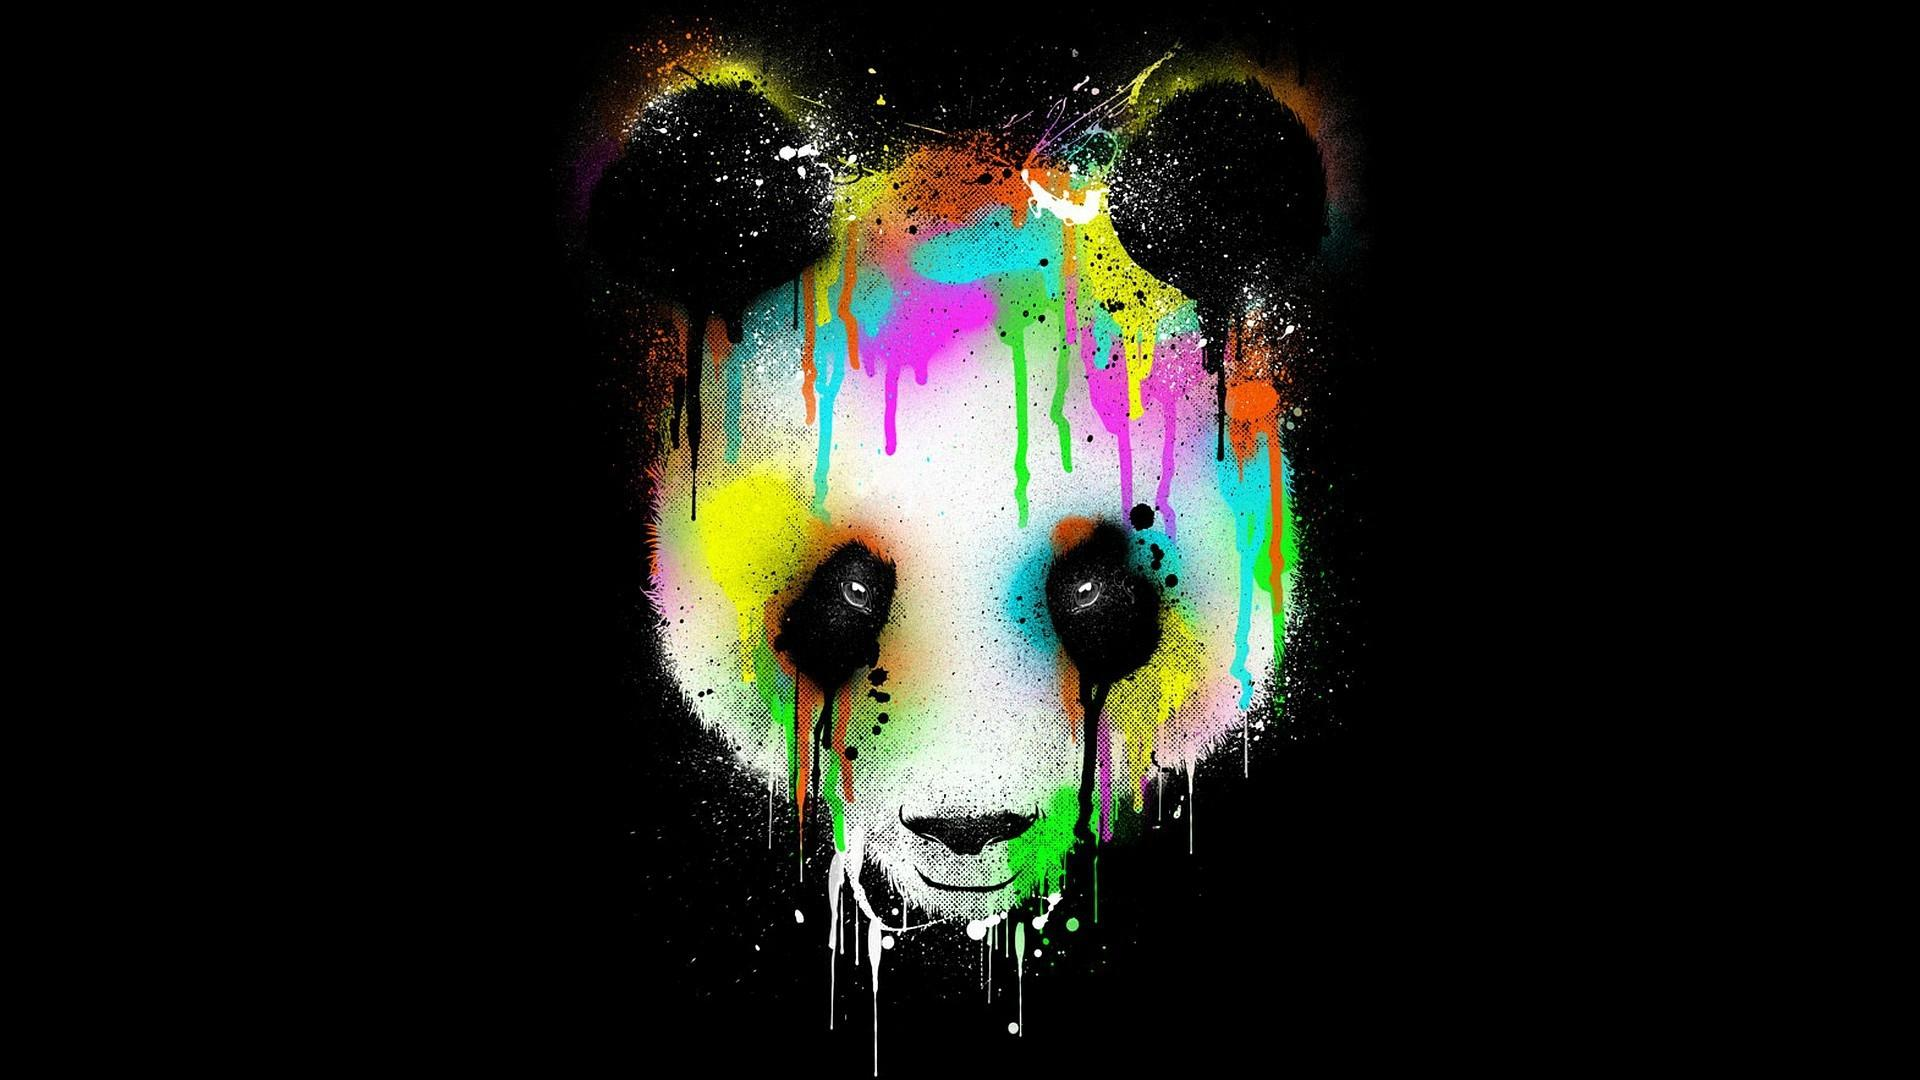 Awesome Cute Skull Wallpapers Colorful Panda Face Wallpaper Other Wallpaper Better